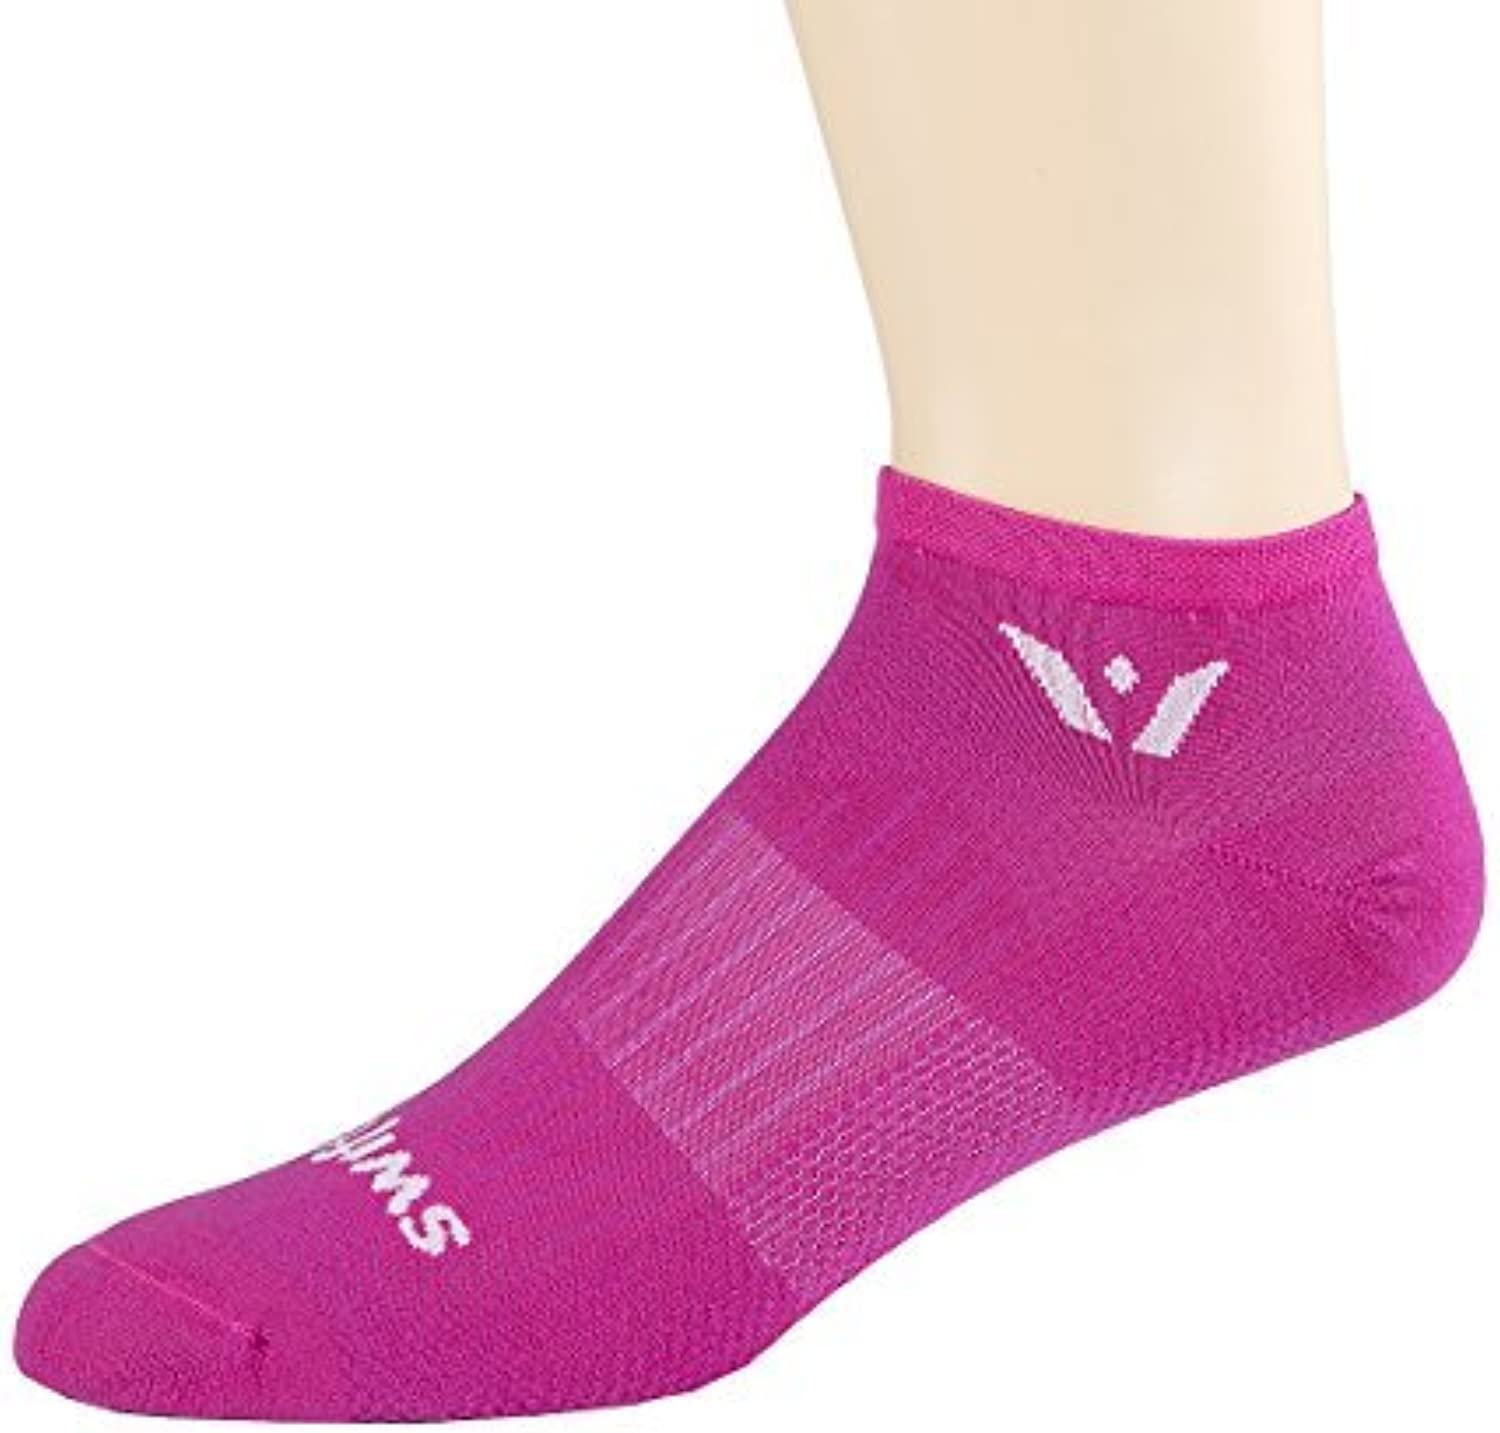 Swiftwick Aspire Socks, Pink, Small by Swiftwick